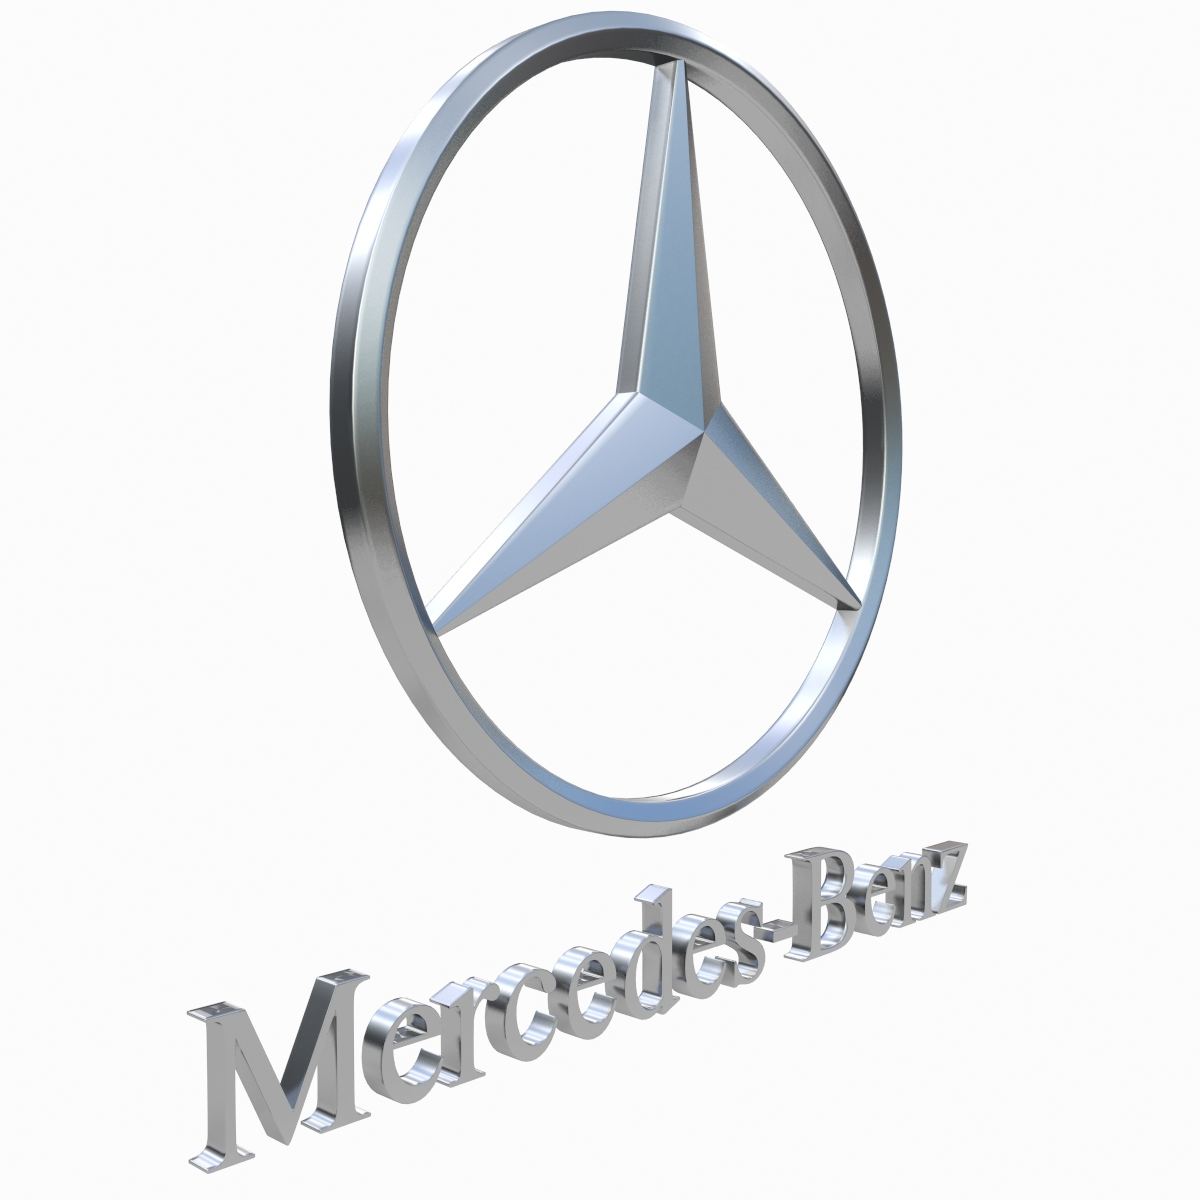 Mercedes benz logo 3d logo brands for free hd 3d mercedes benz logo 3d voltagebd